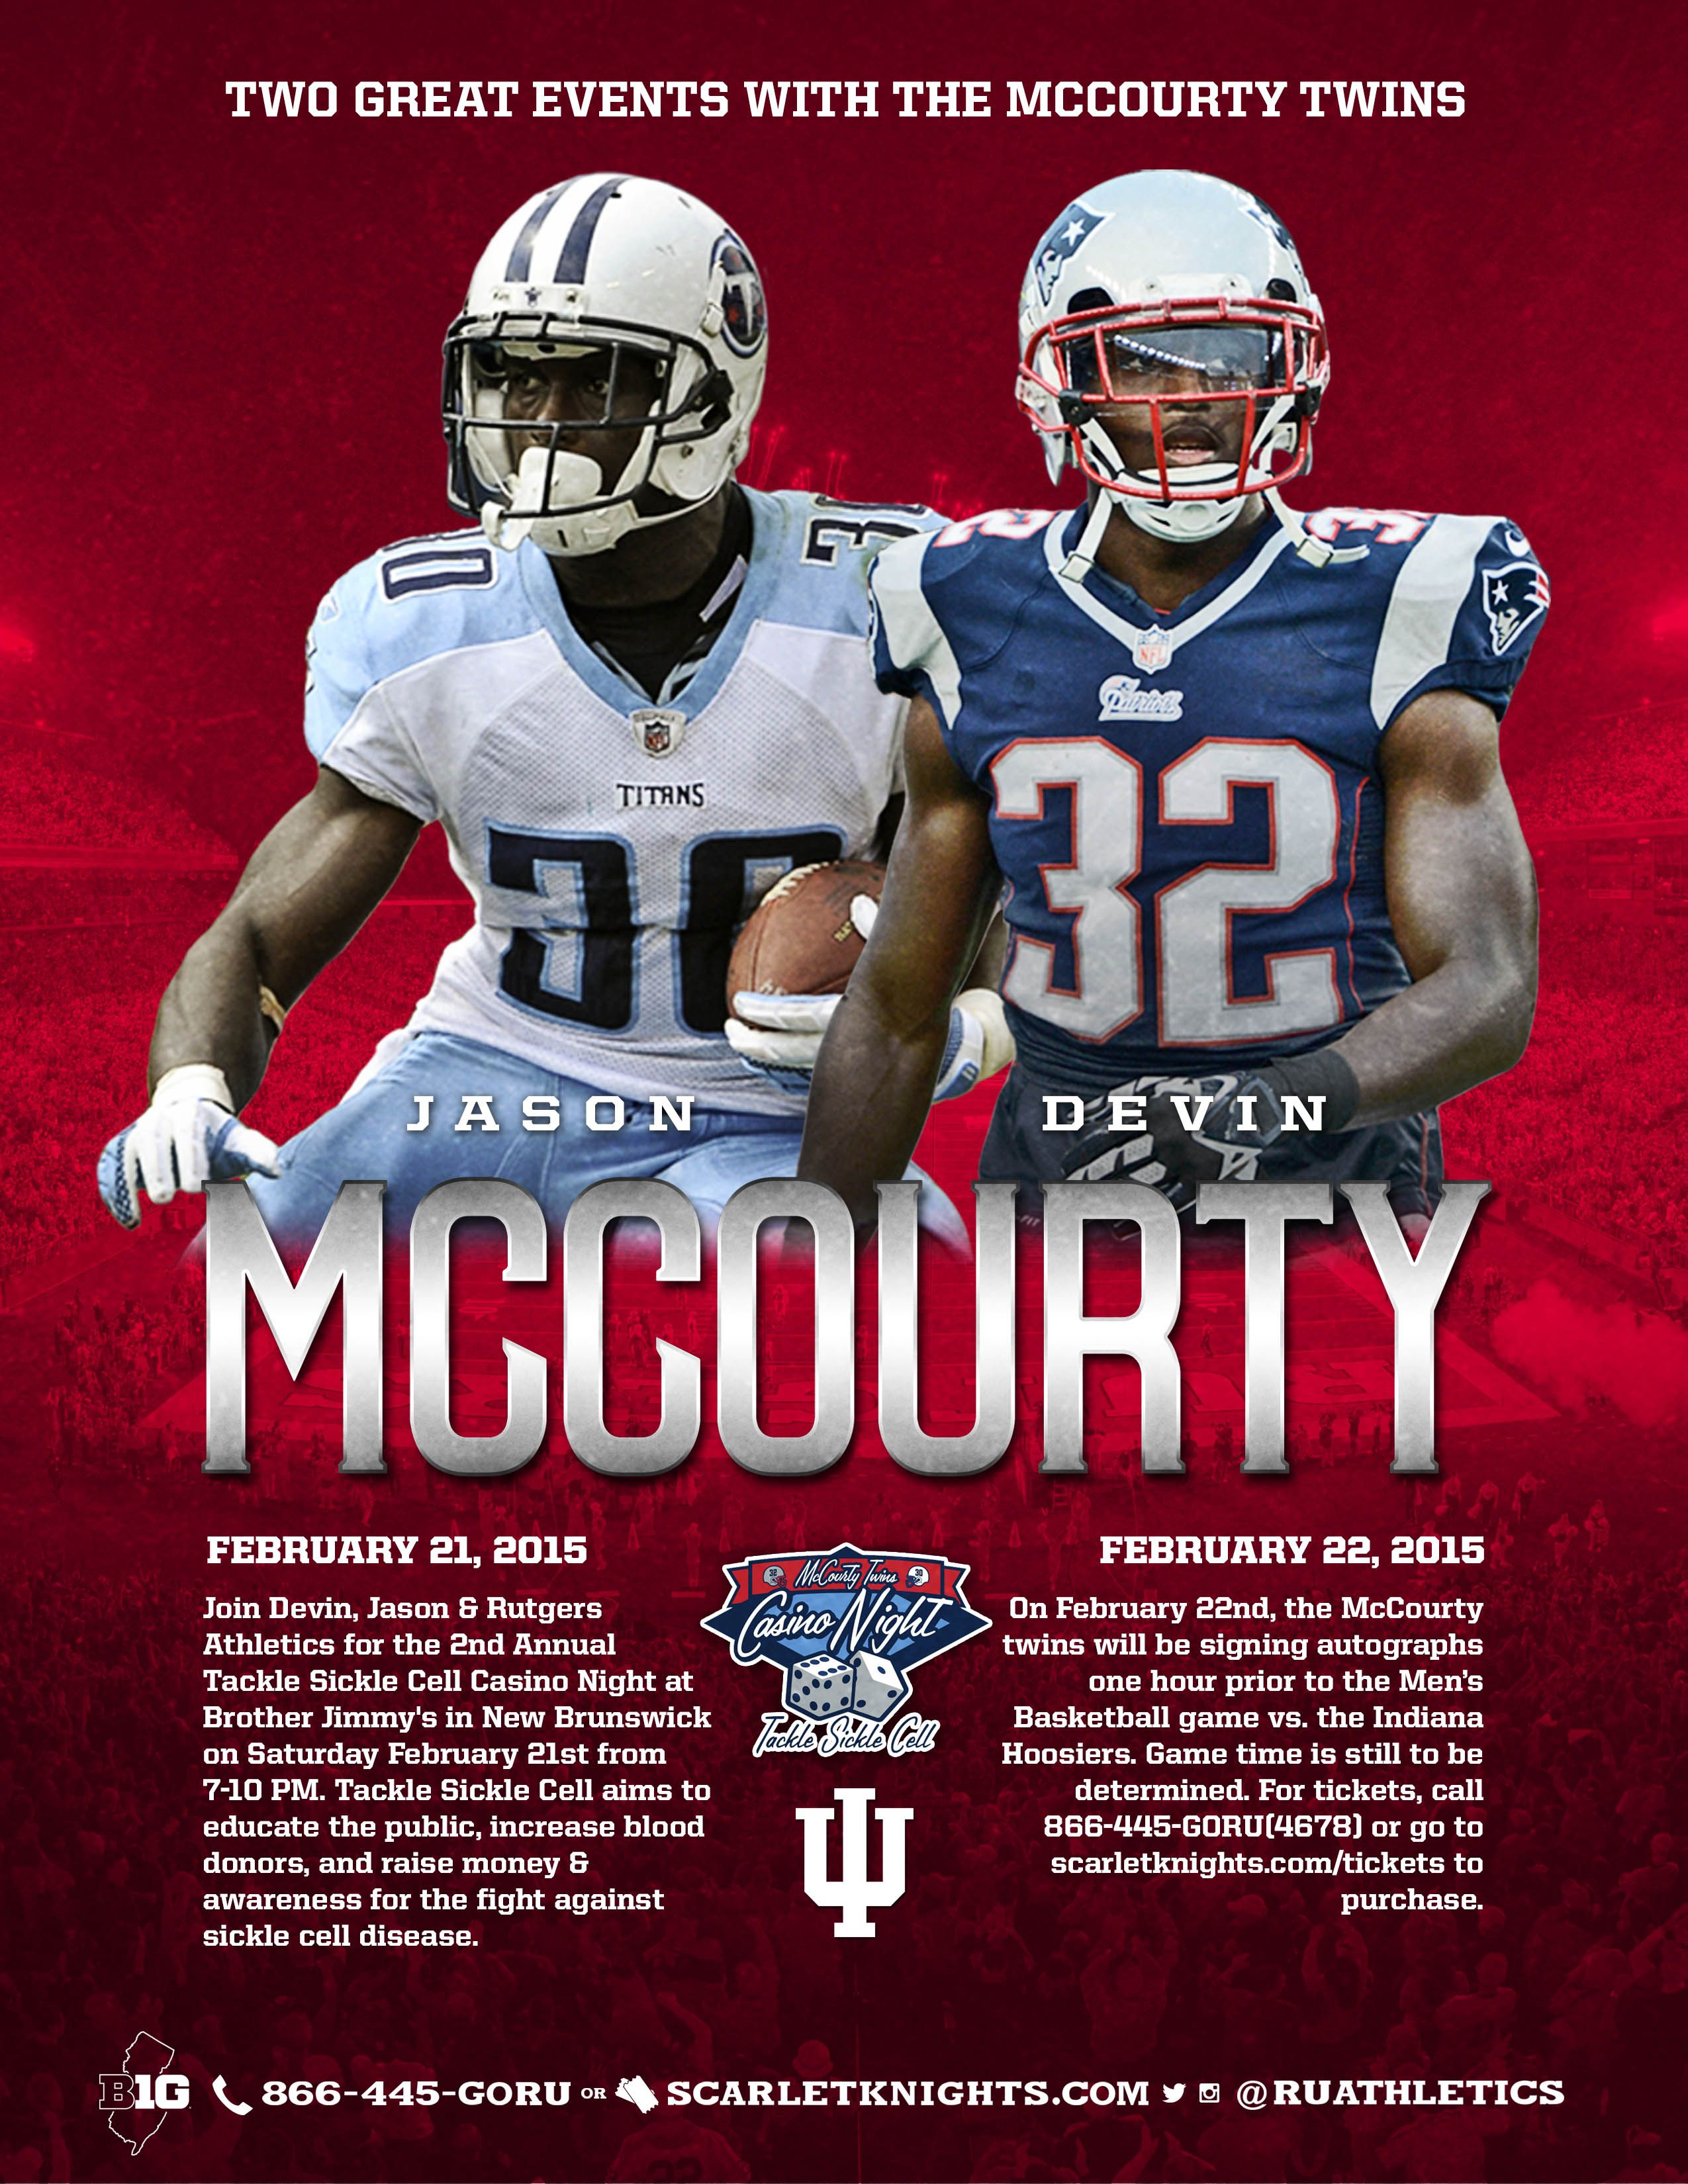 The Mccourty Twins Will Be Here To Sign Autographs Feb 21 22 New England Patriots Patriots New England